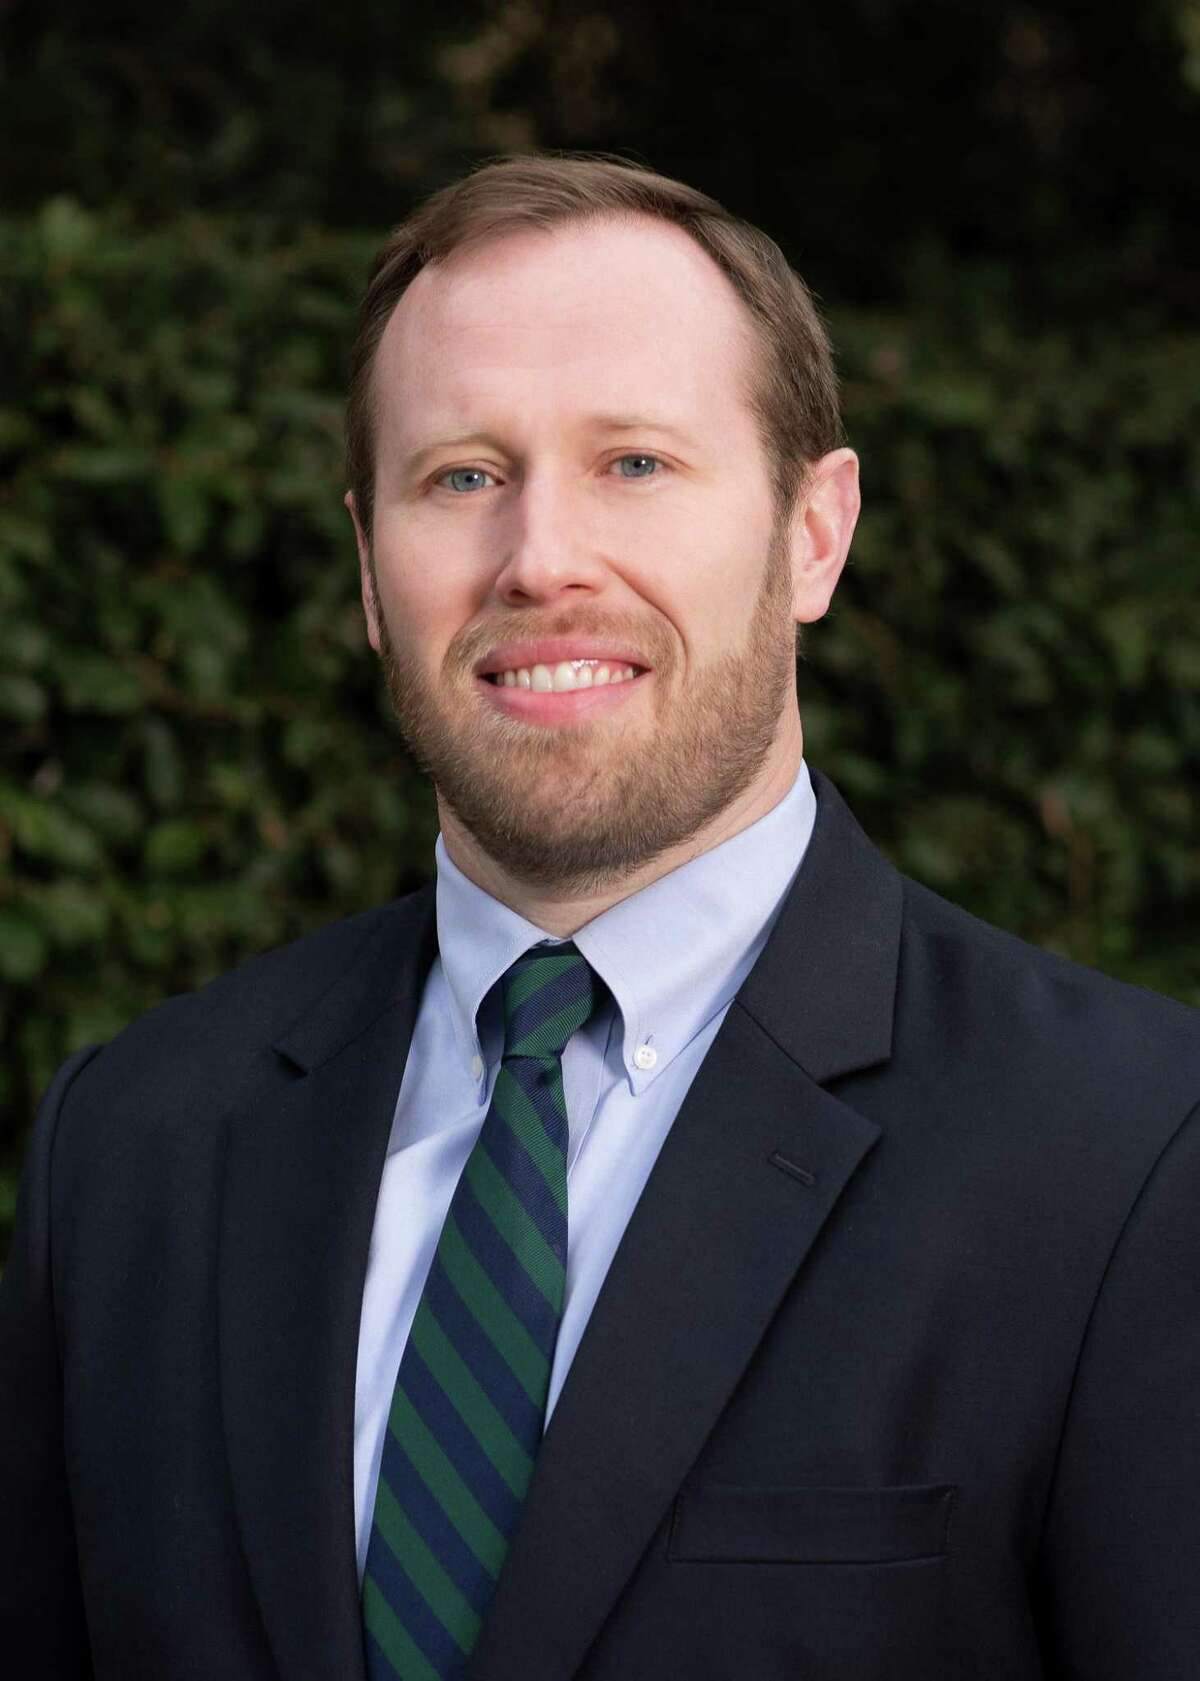 Tyler Gray is president and general counsel of the Louisiana Mid-Continent Oil and Gas Association.